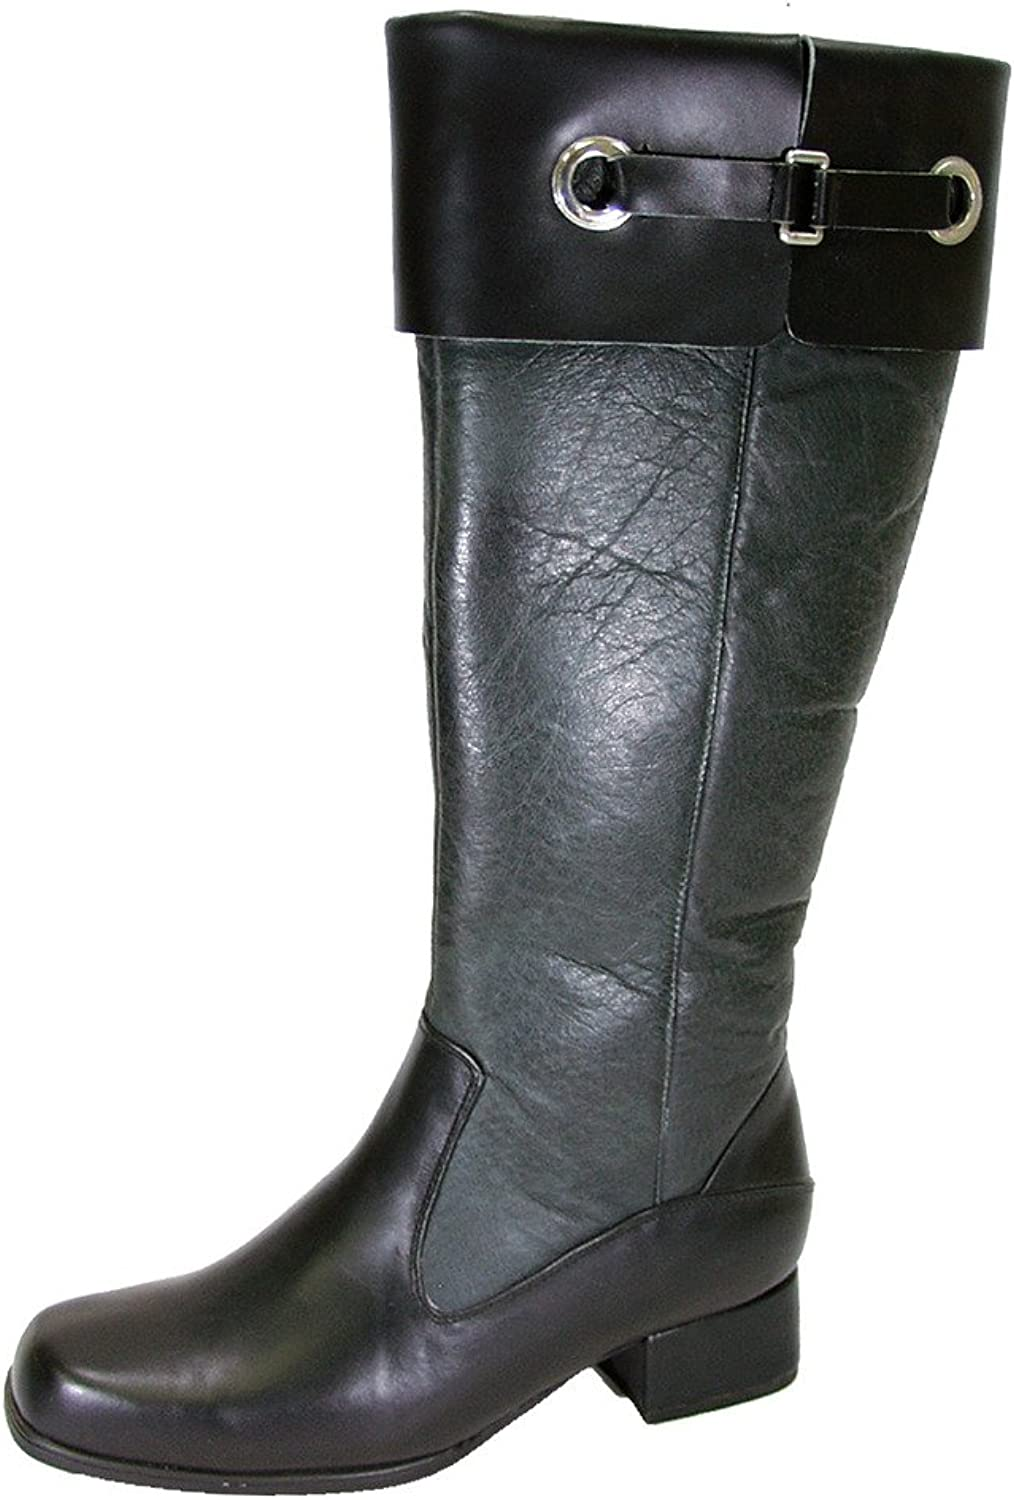 Peerage FIC Taylor Women Wide Width Leather Knee High Dress Boots (Size & Measurement Guides Available)